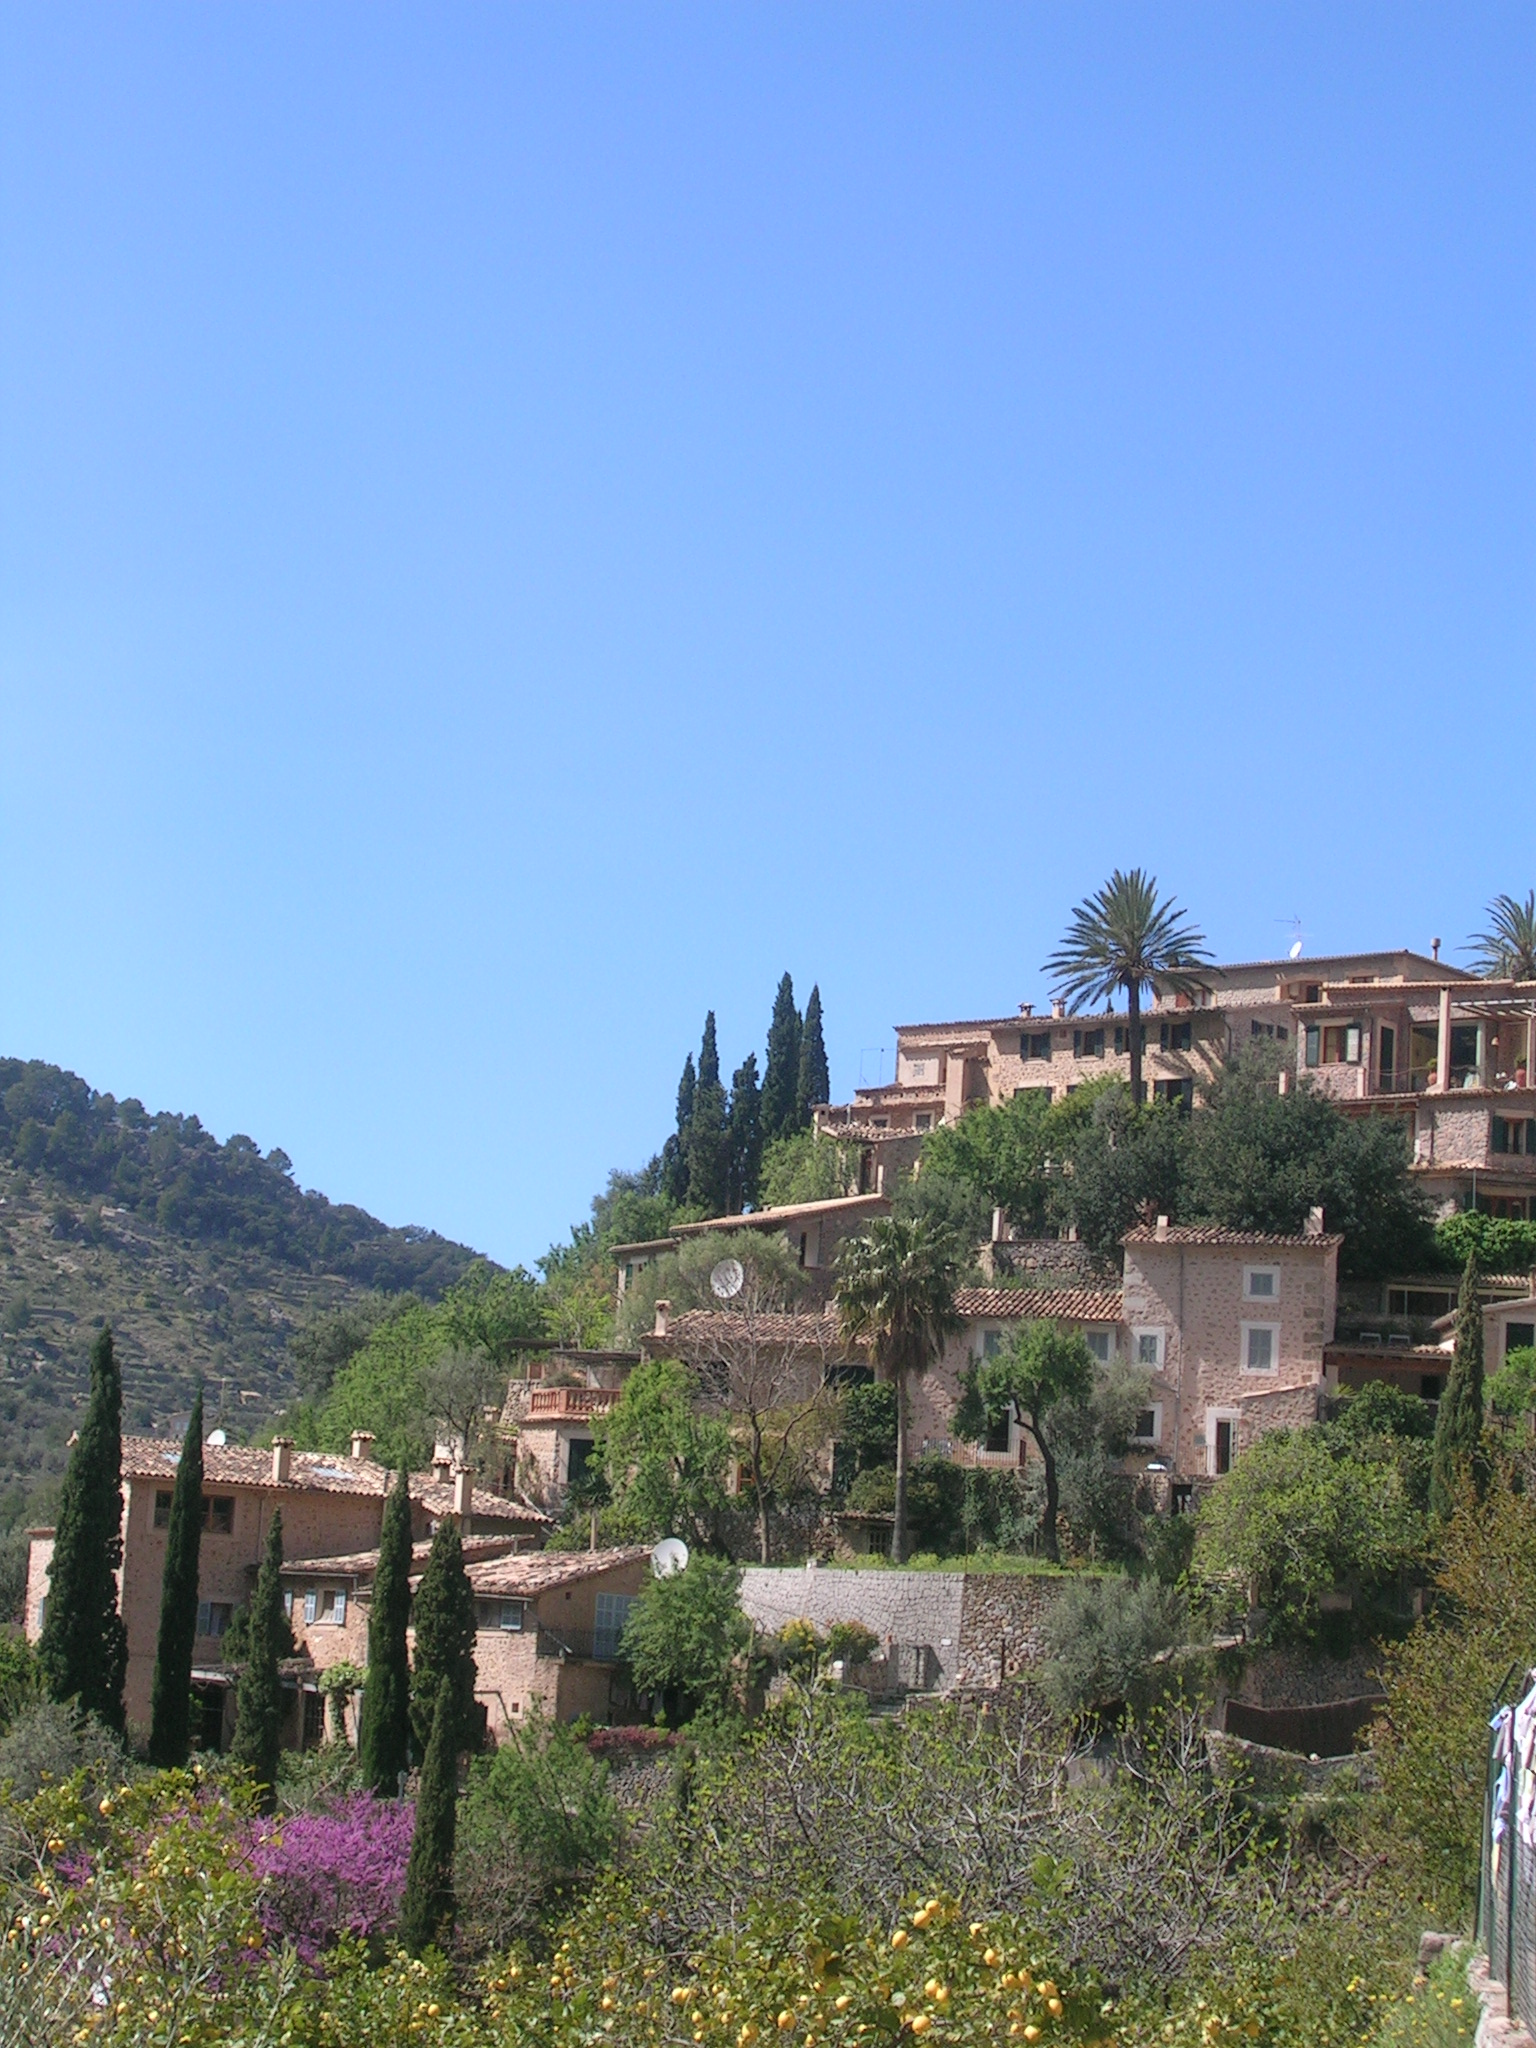 Post Thumbnail of Que visitar en Mallorca? Valldemosa